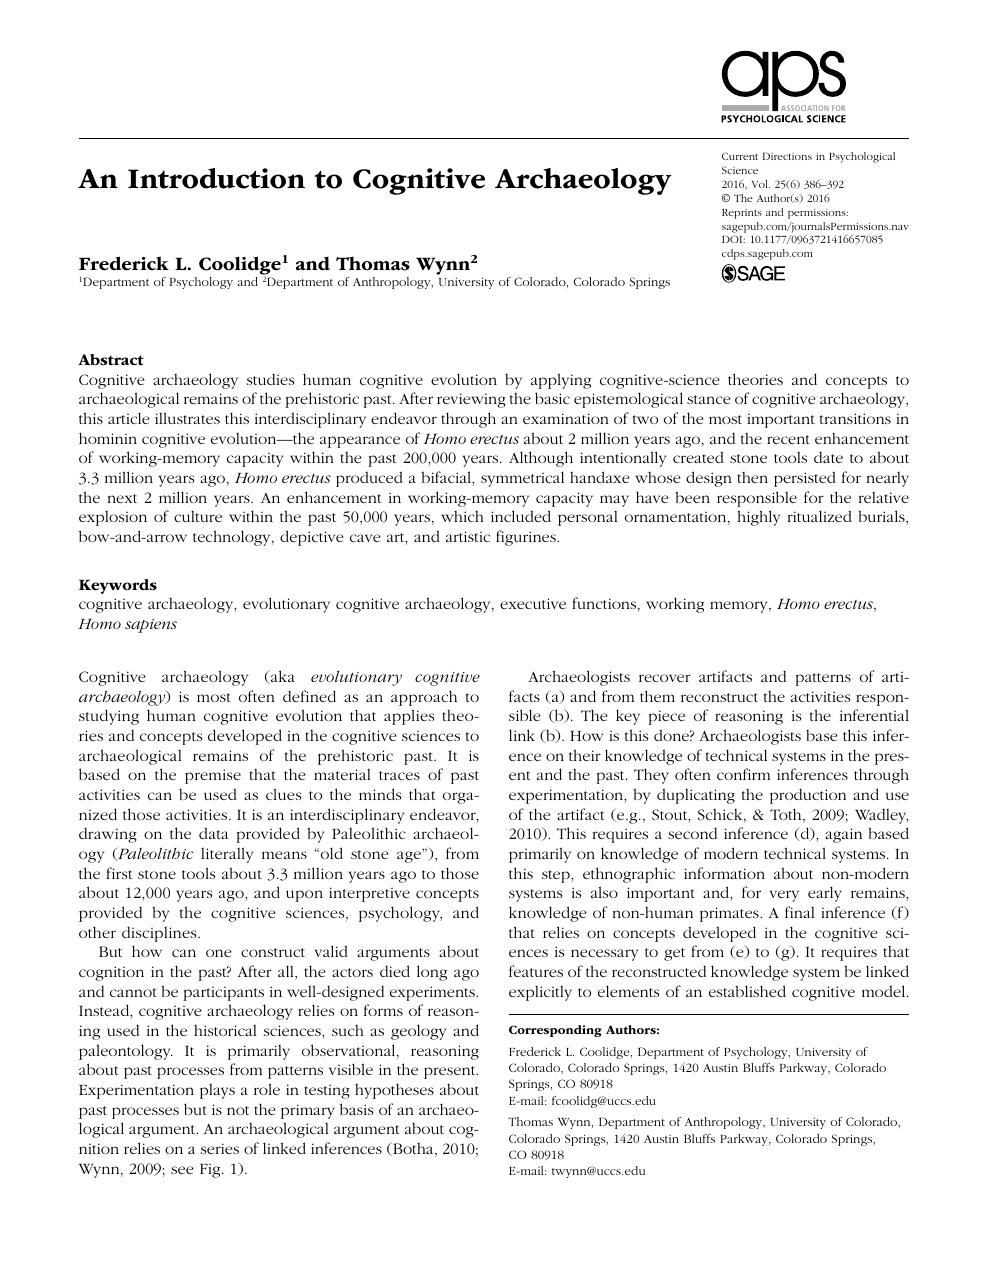 archaeology research paper